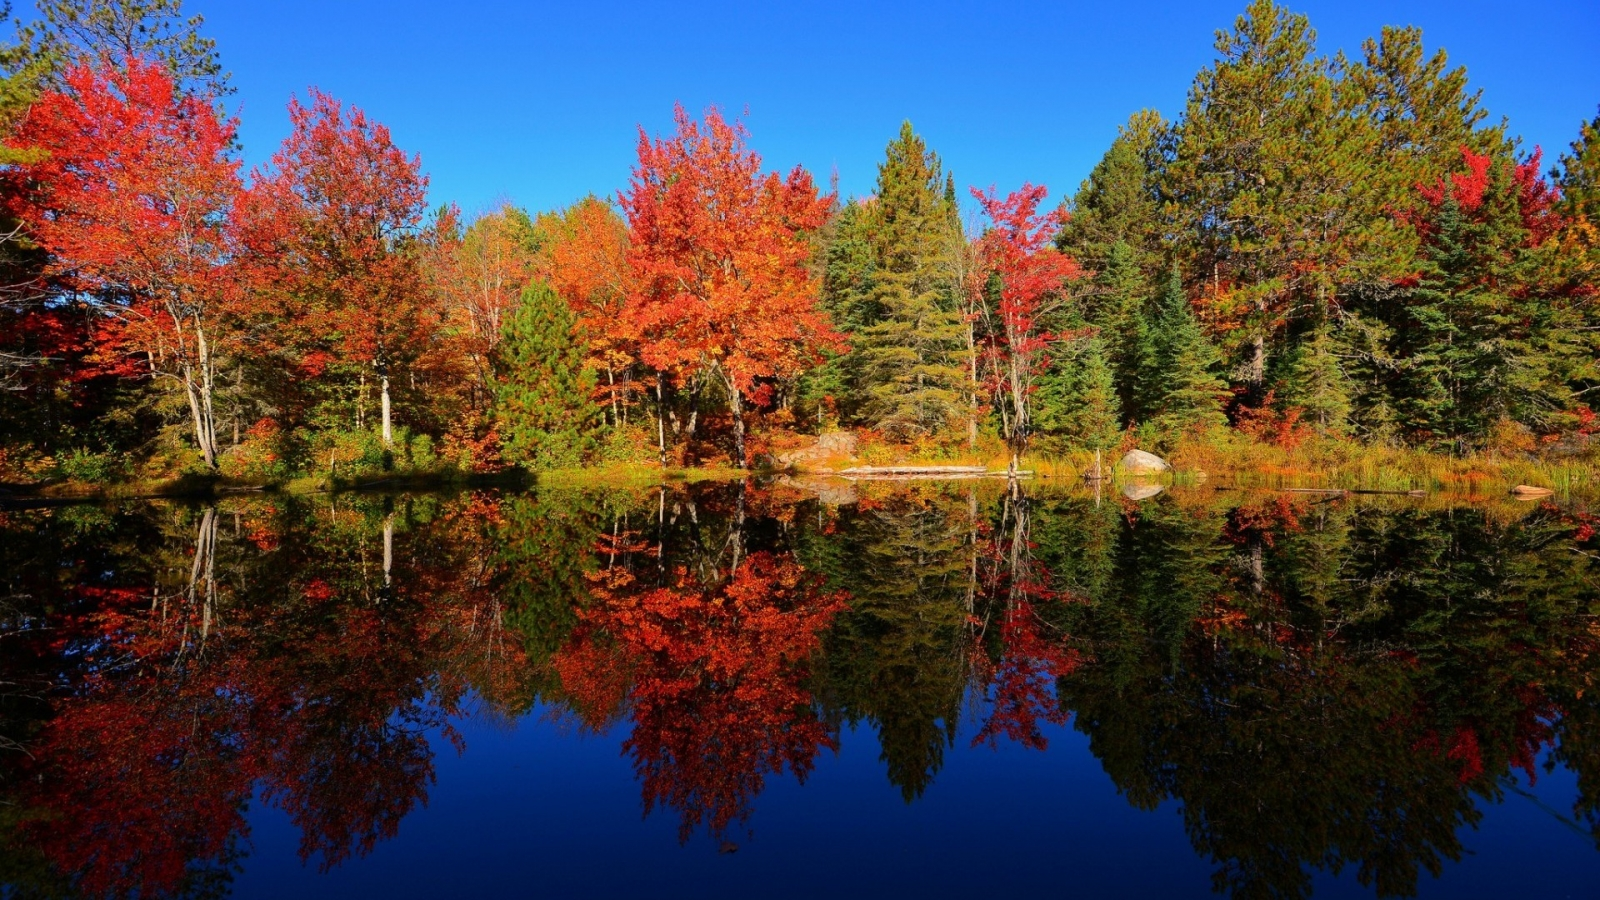 Colourful Forest Reflection for 1600 x 900 HDTV resolution